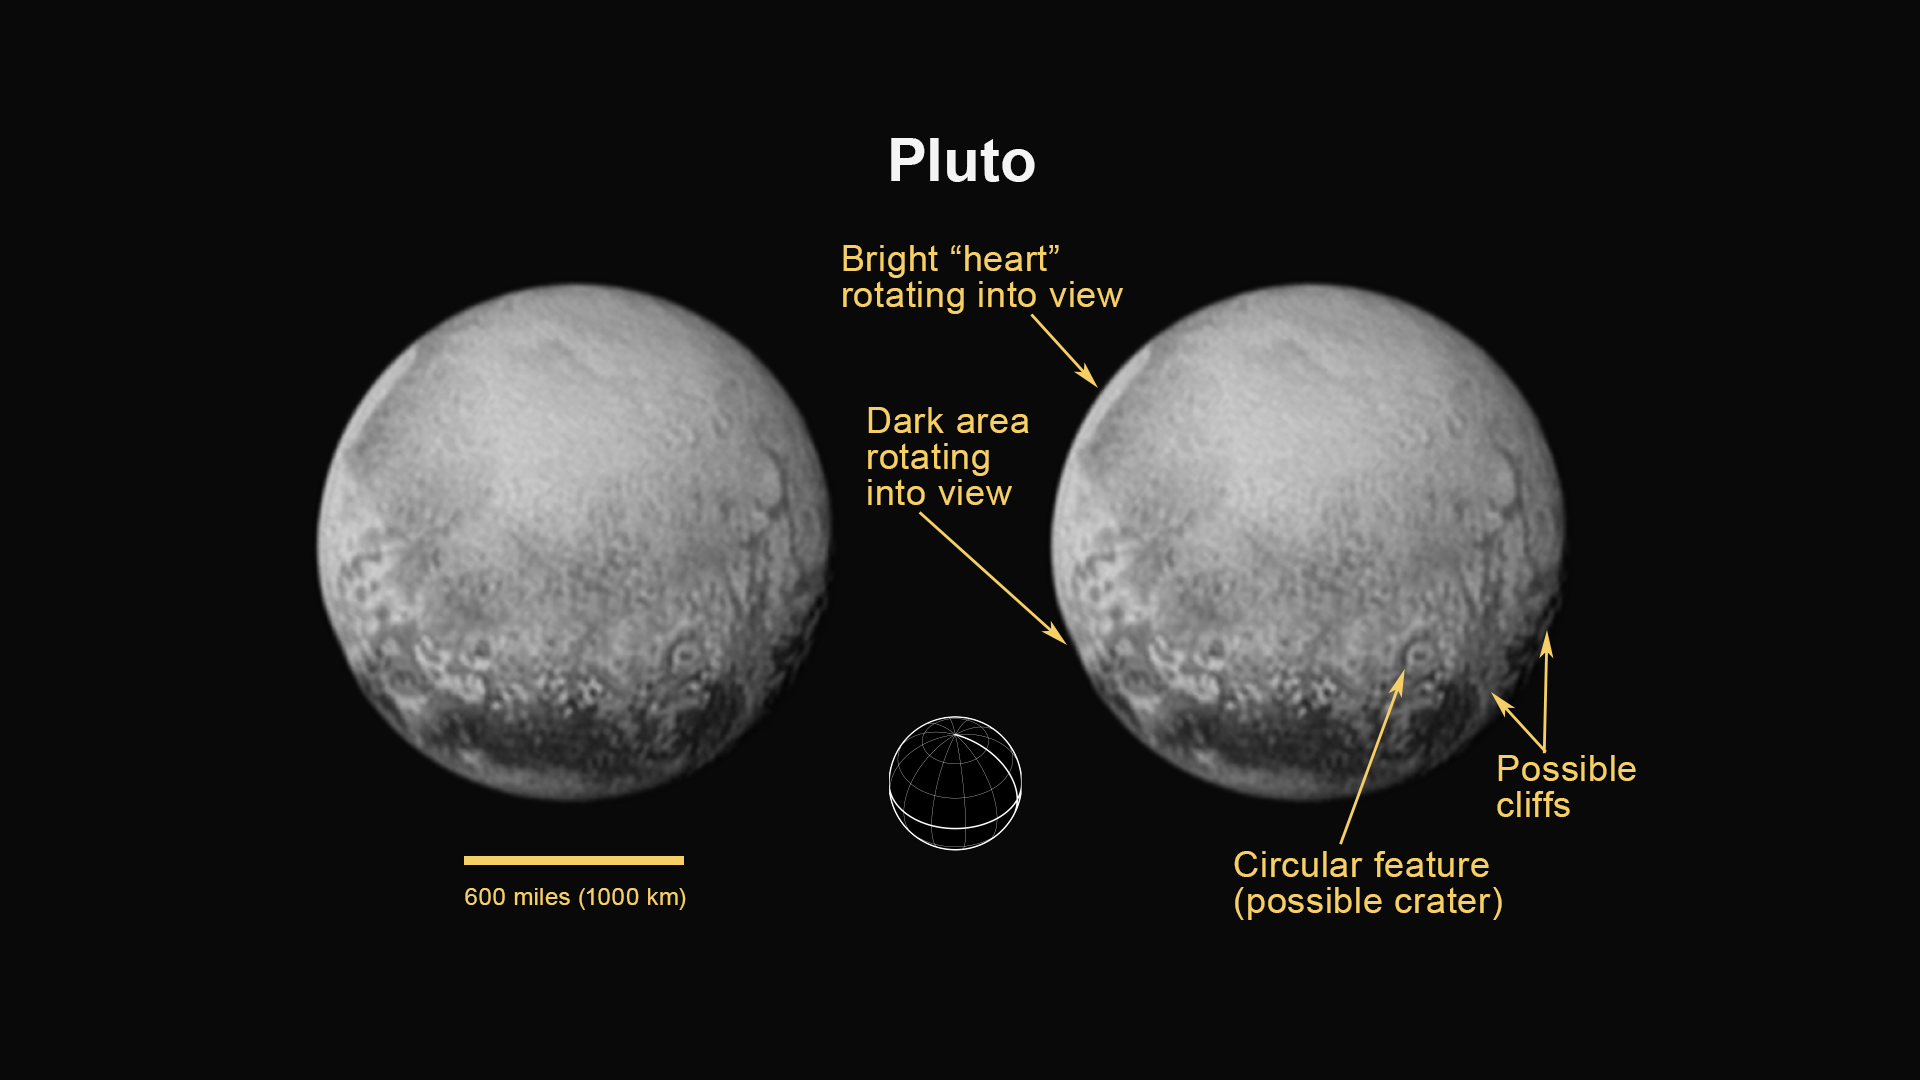 An annotated version of an image of Pluto captured July 11 by New Horizons' Long Range Reconnaissance Imager (LORRI) instrument. Pluto's northern hemisphere appears in the image, with its equator near the bottom of the disk. Credit: NASA/JHUAPL/SWRI